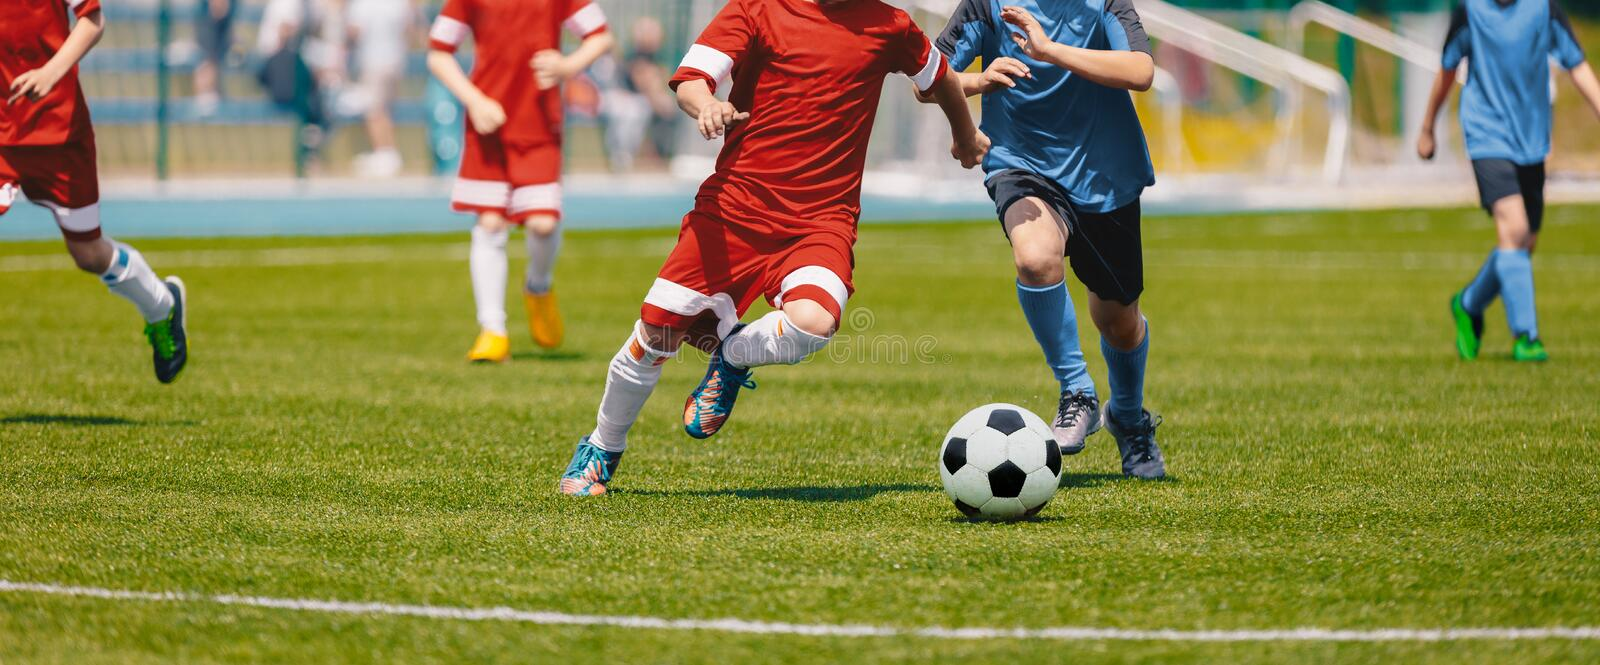 Football Soccer Players Running with Ball. Footballers Kicking Football Match. Young Soccer Players Running After the Ball. Kids in Soccer Red and Blue royalty free stock images